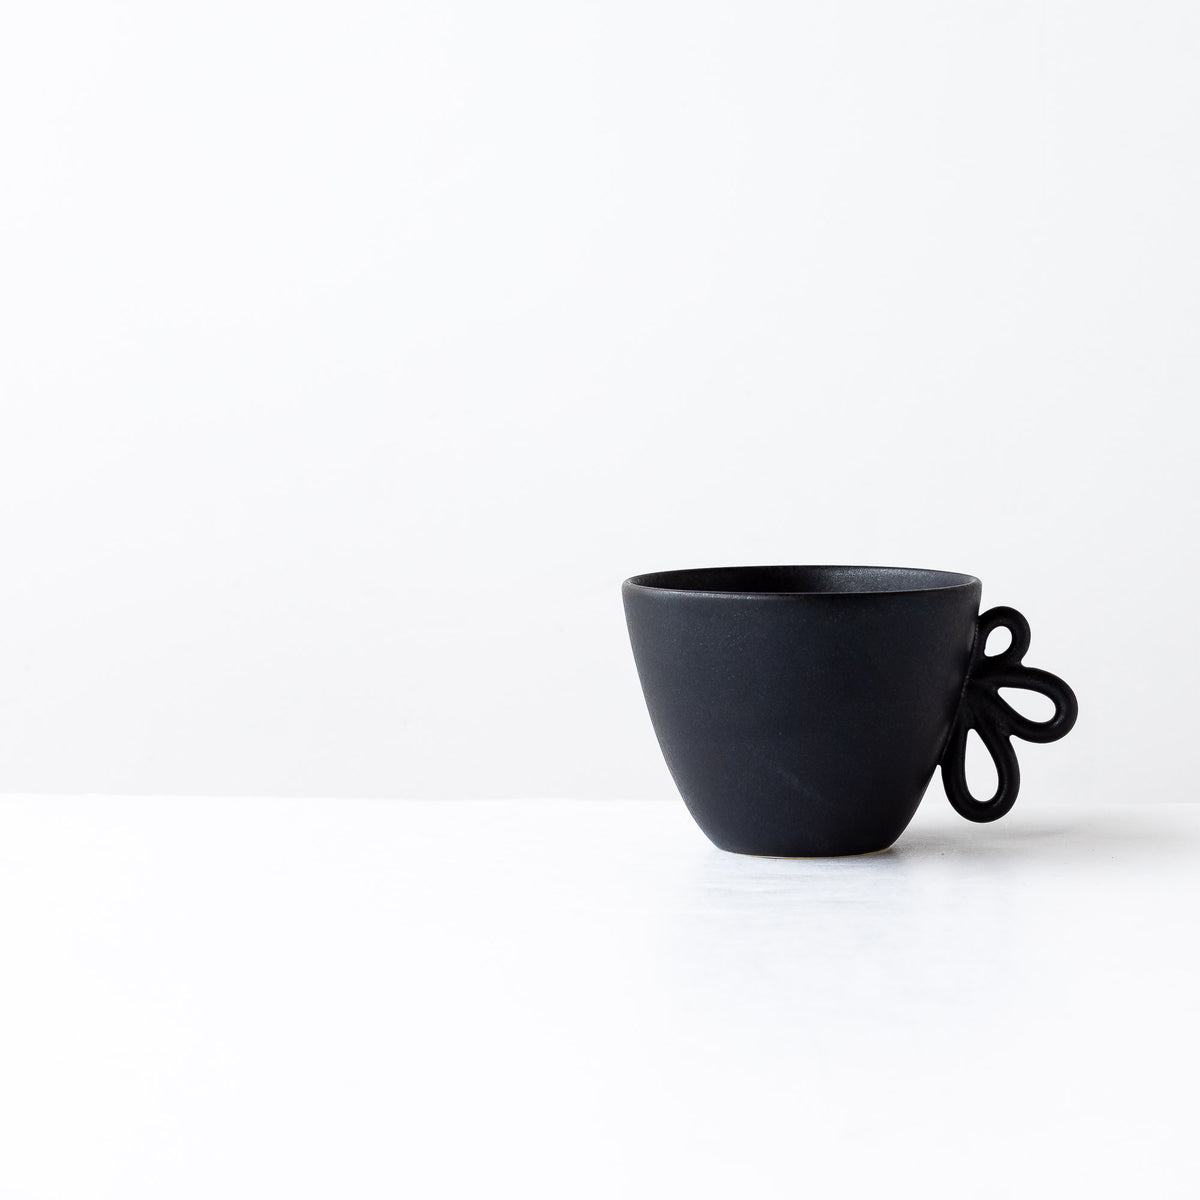 Charcoal Black Small Round Wheel Thrown Stoneware Mug - Sold by Chic & Basta